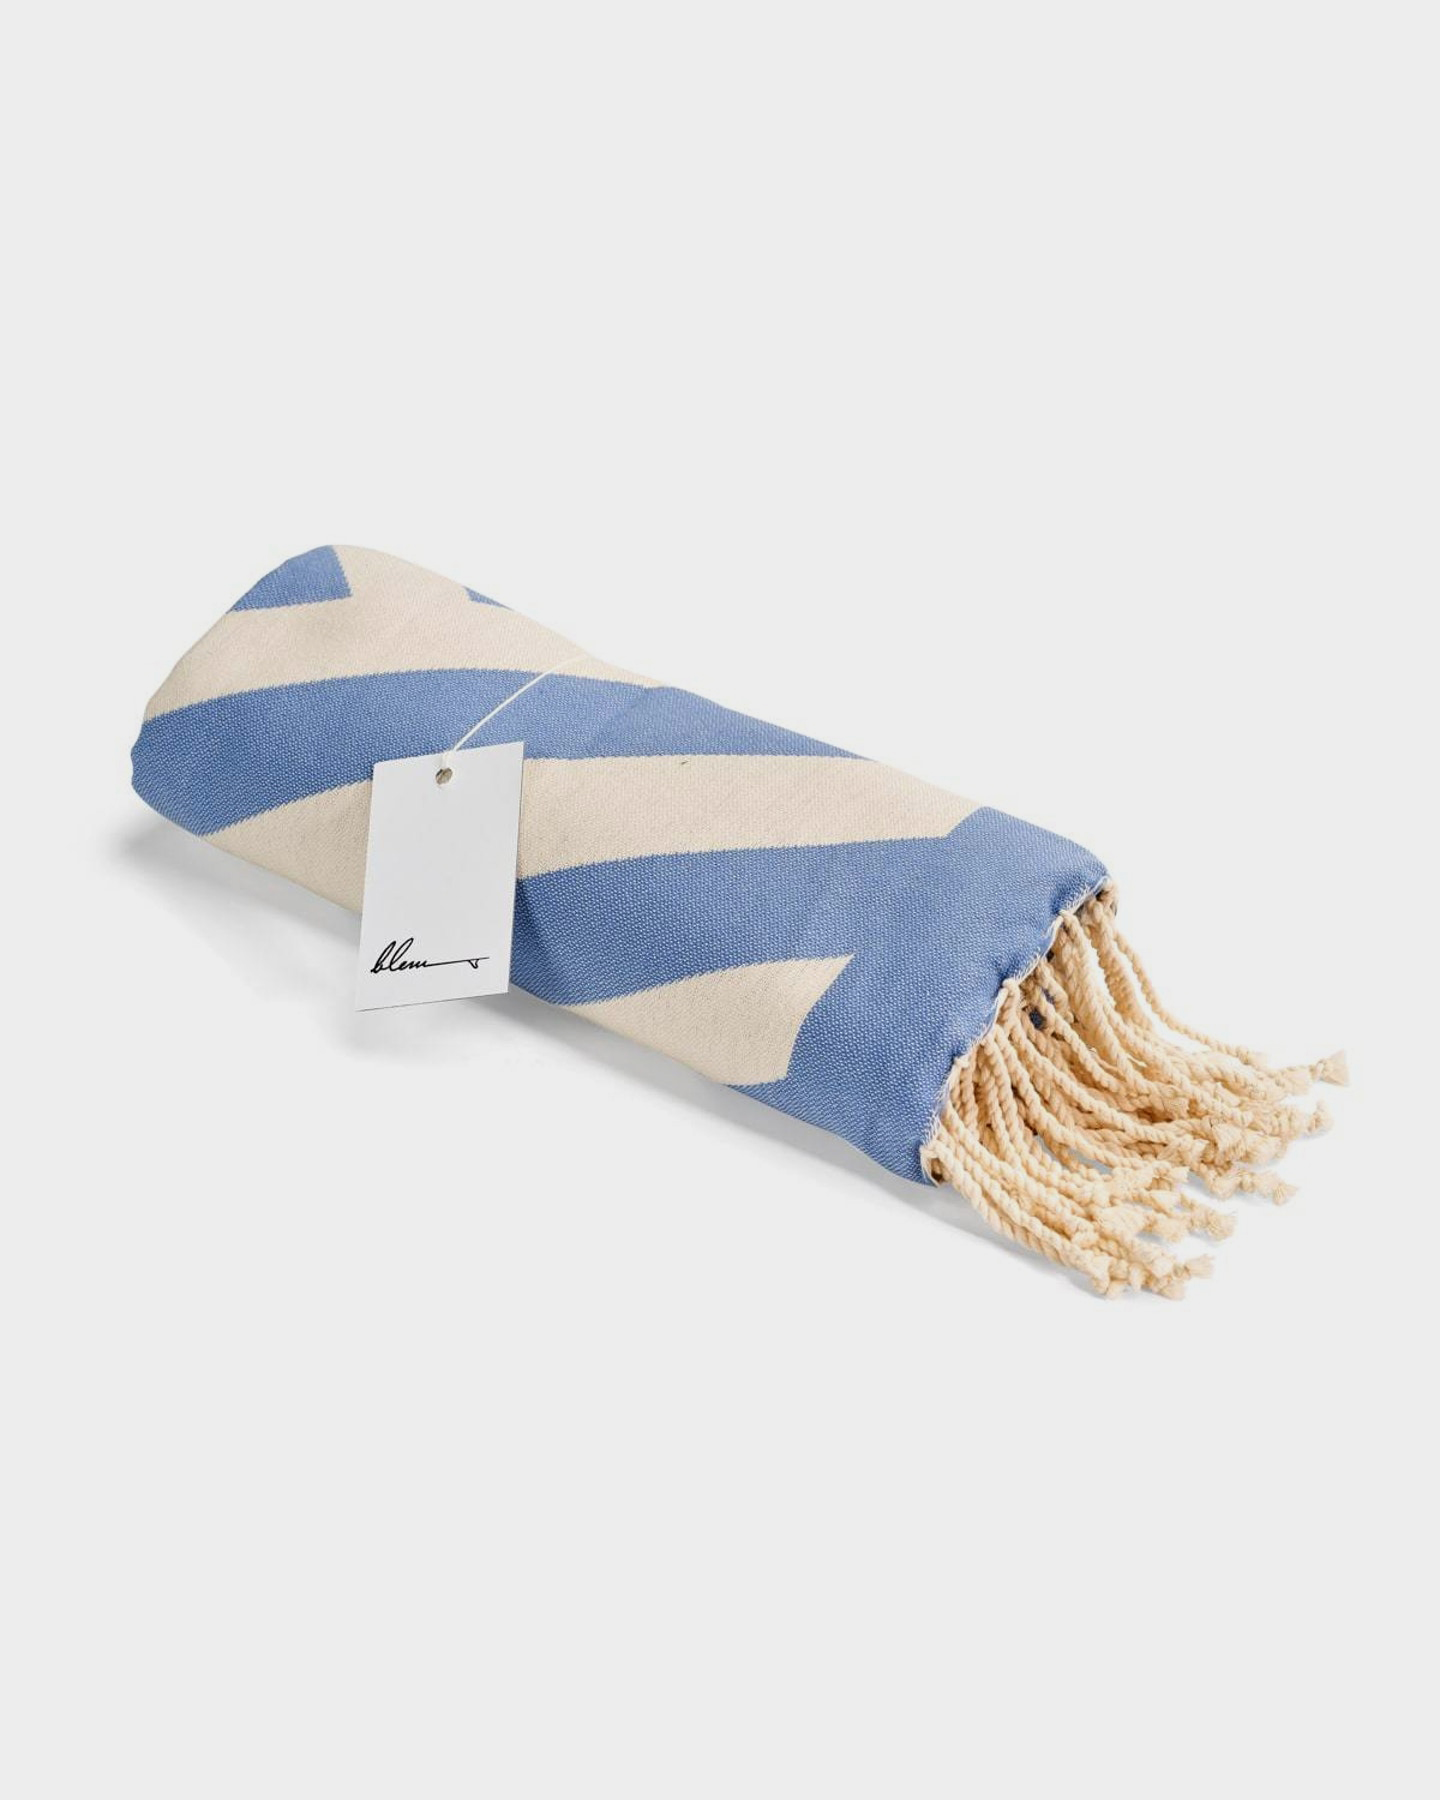 Blem Beach Accessories Zig Zag Blue Jackie Collection Towel Blue